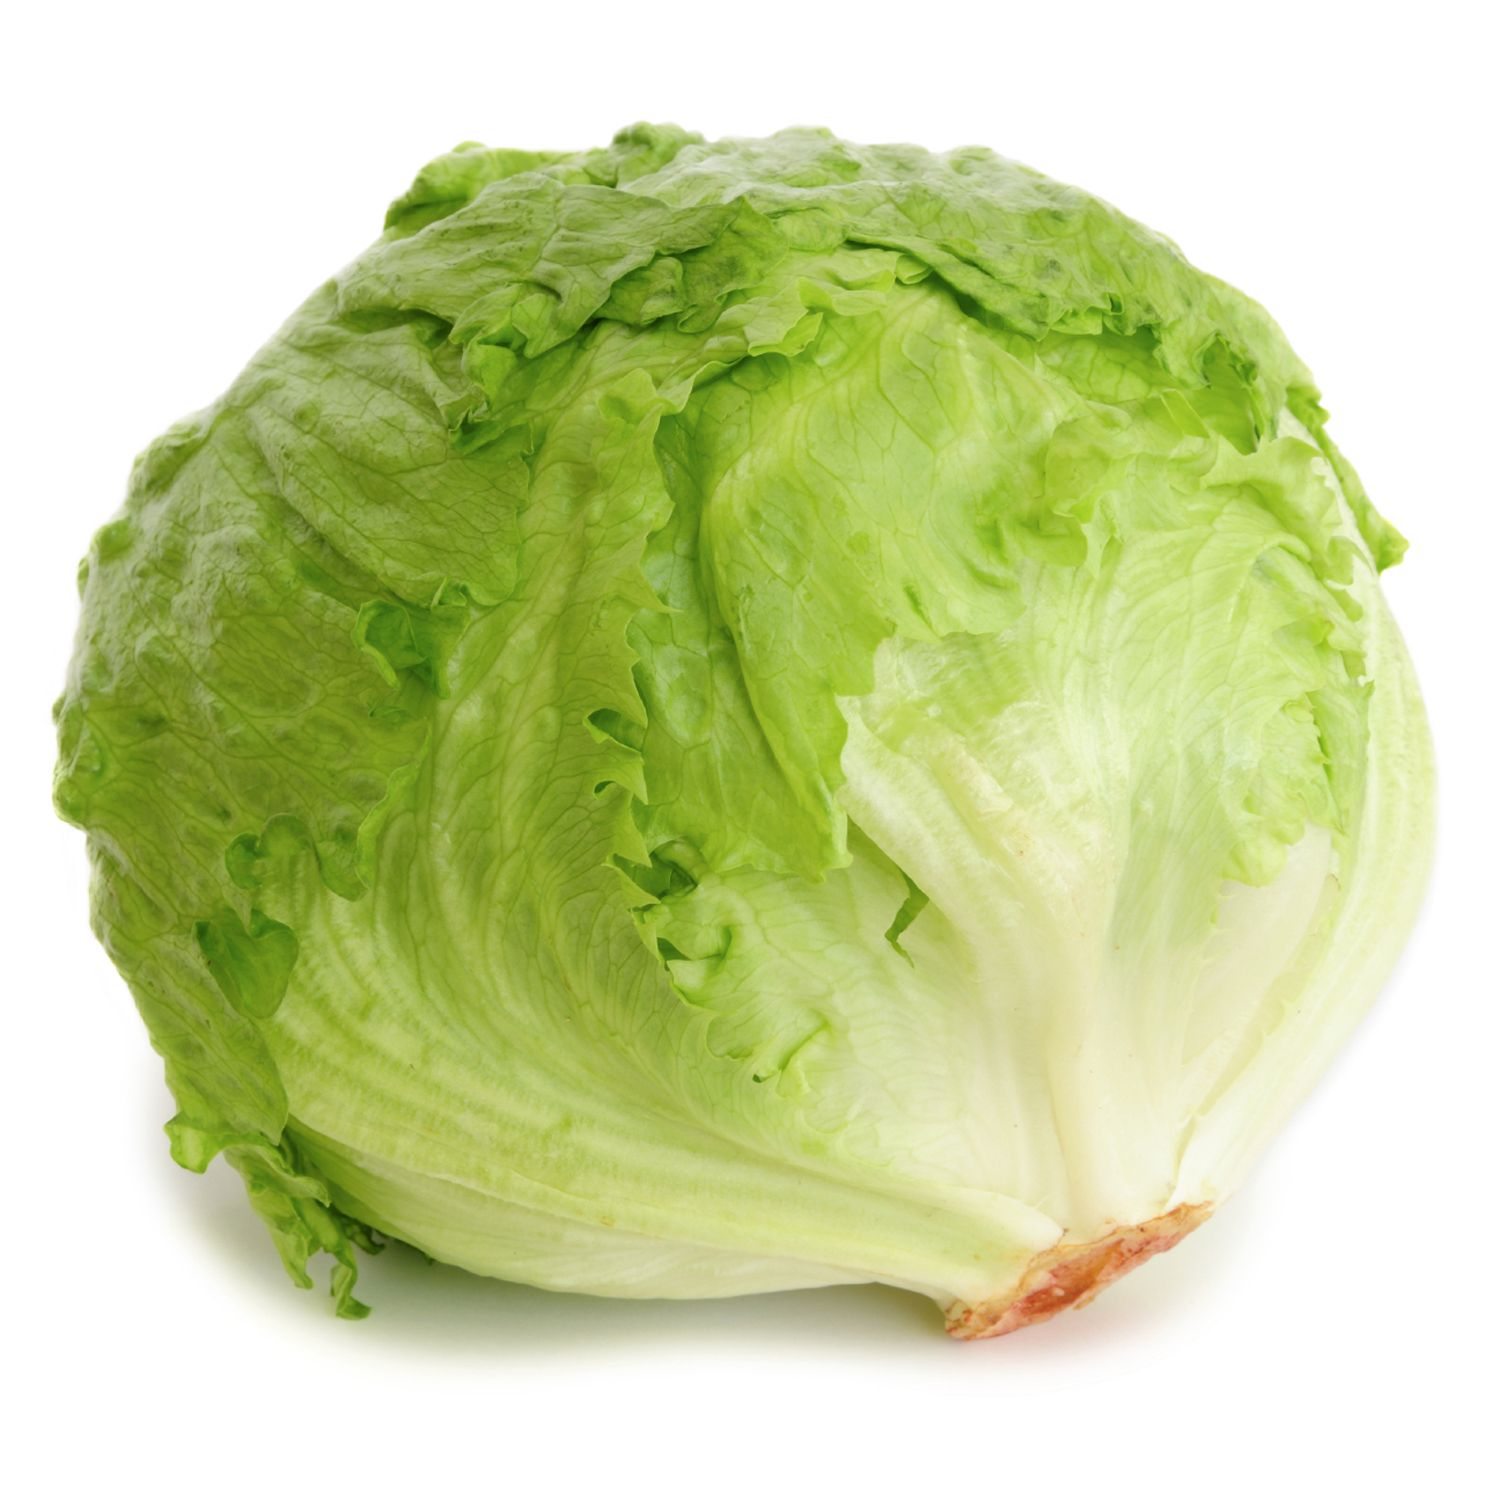 All About Lettuce : Types, Nutritional Value And Smoothies lettuce-crisphead